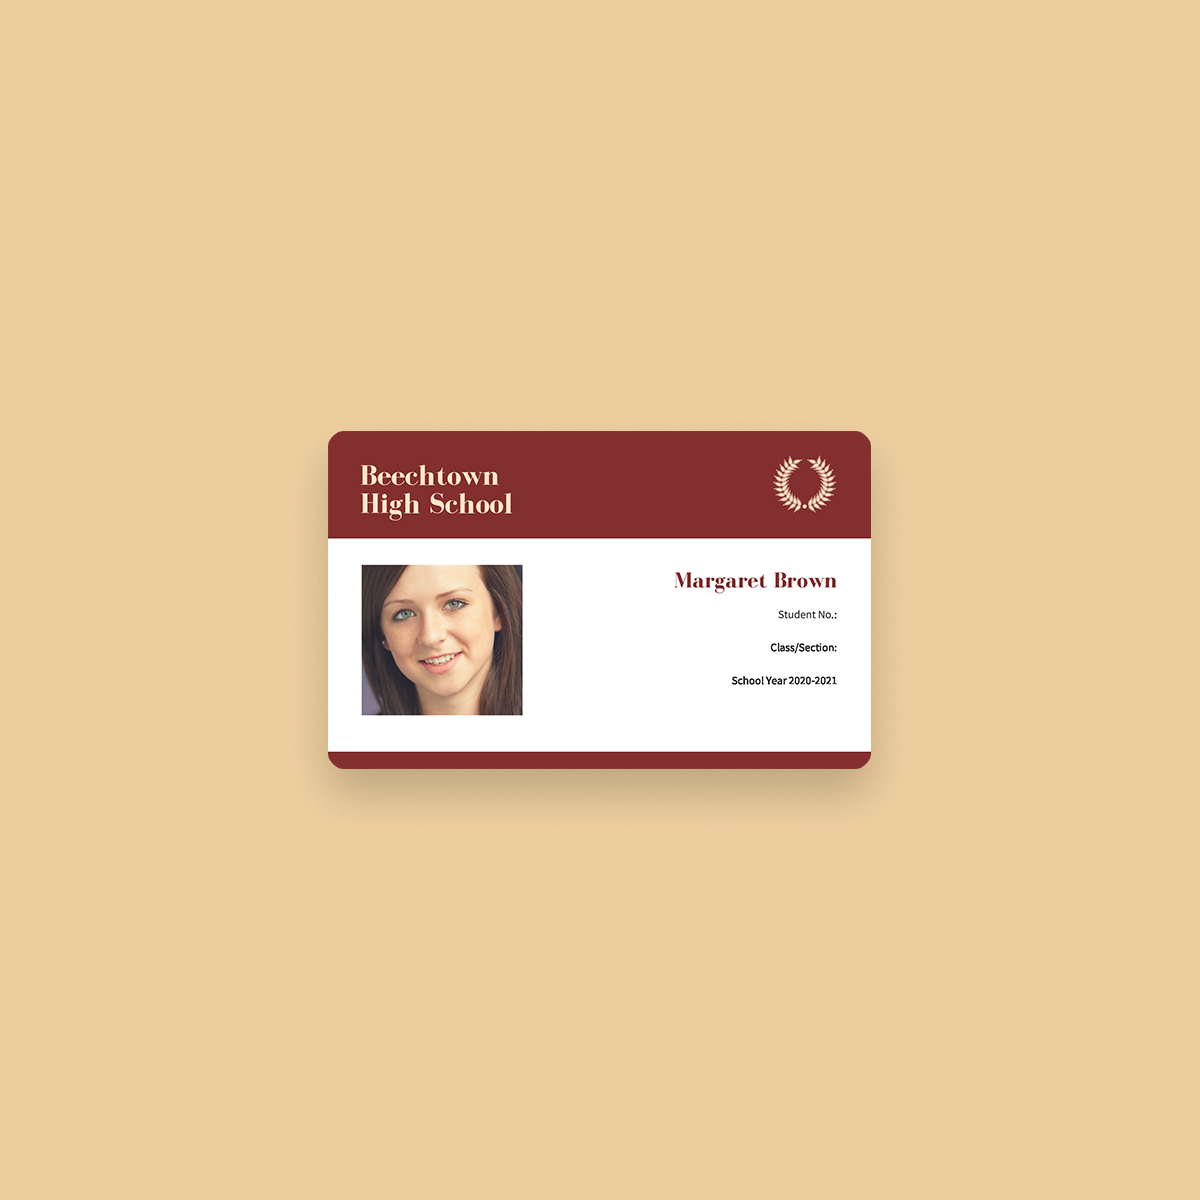 Free Online Id Maker: Design A Custom Id In Canva Regarding High School Id Card Template